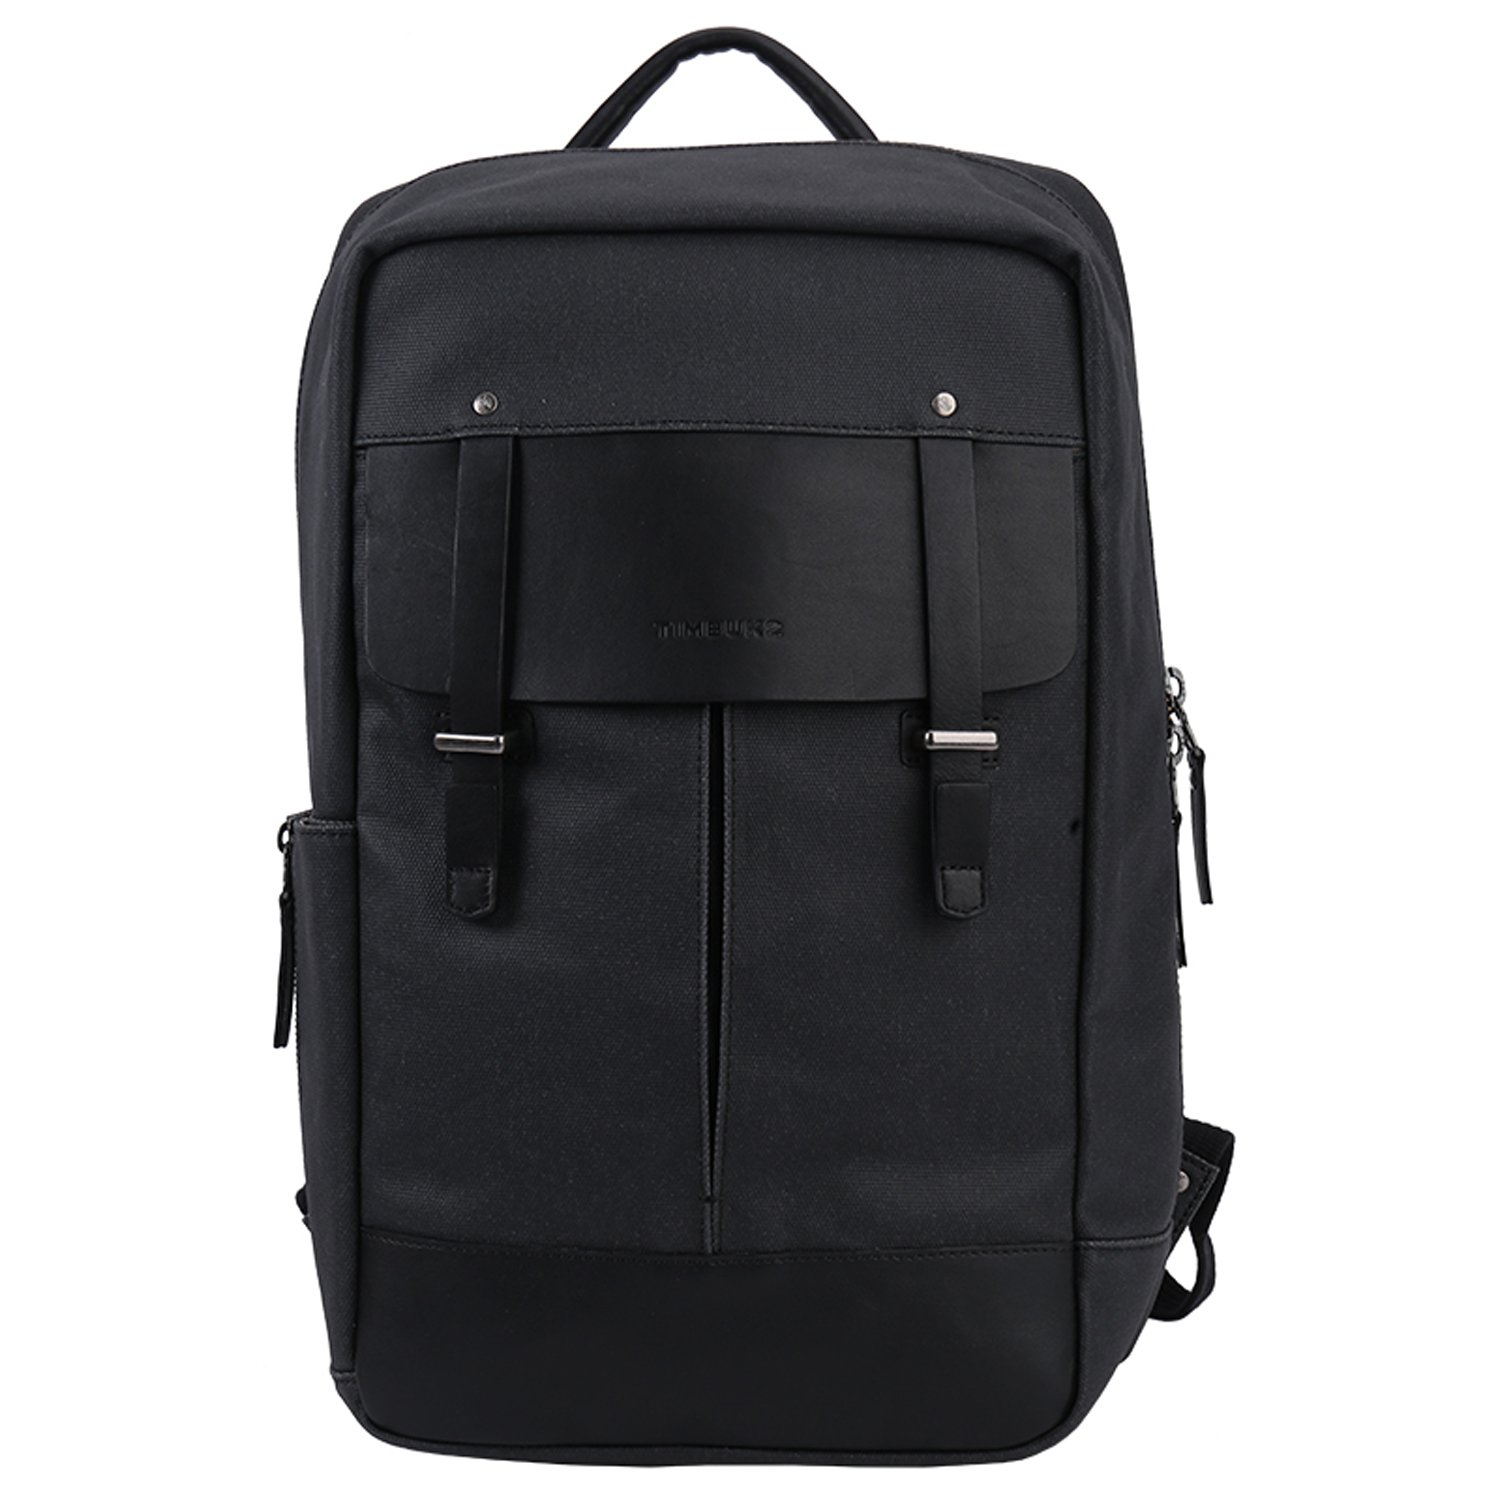 Timbuk2 Cask Laptop Backpack, Black, One Size by Timbuk2